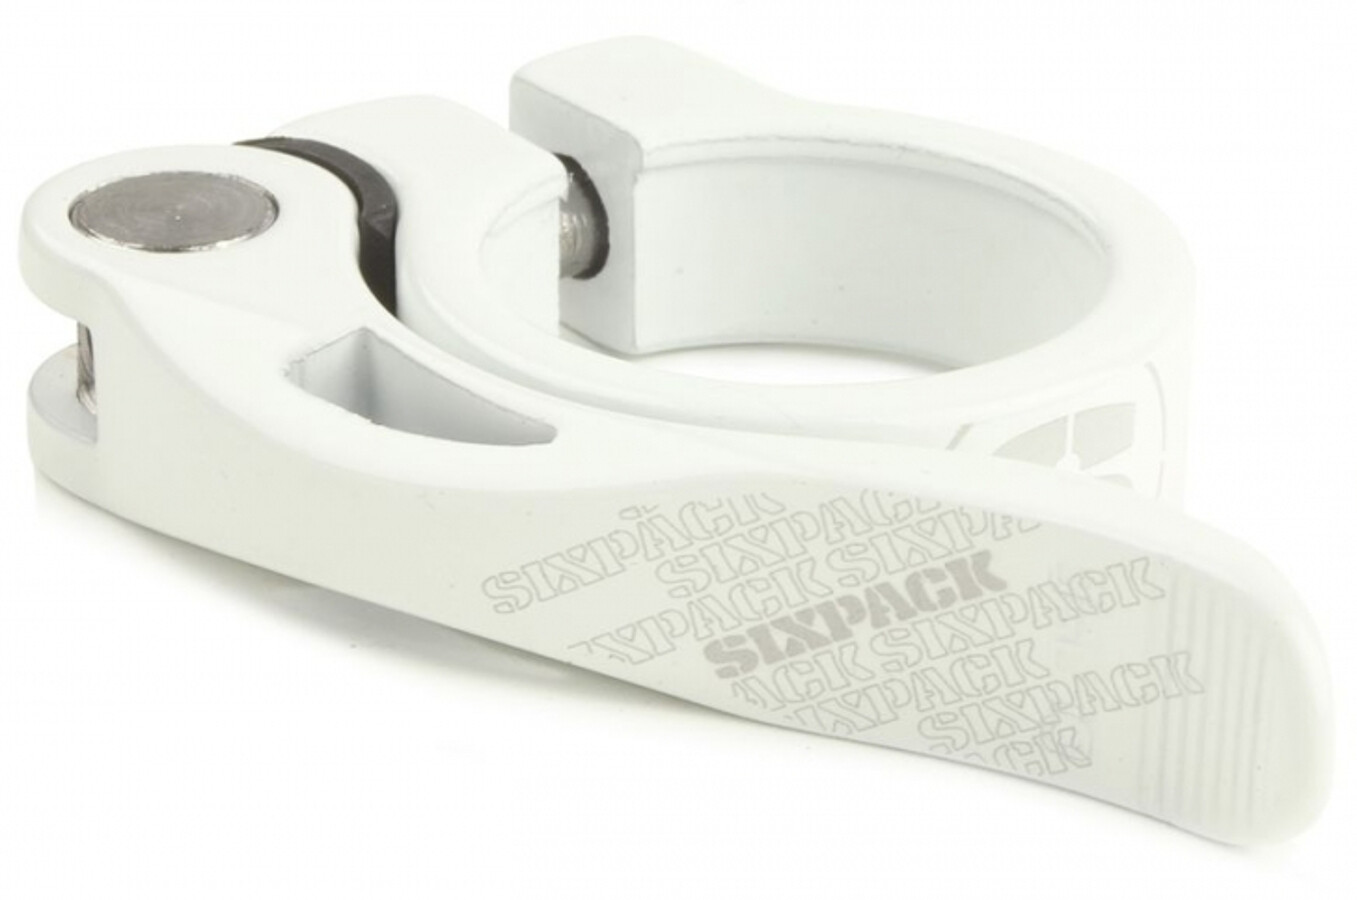 Sixpack Menace Saddle Clamp for Shaft Coupling 35mm, white (2019) | Seat Clamp